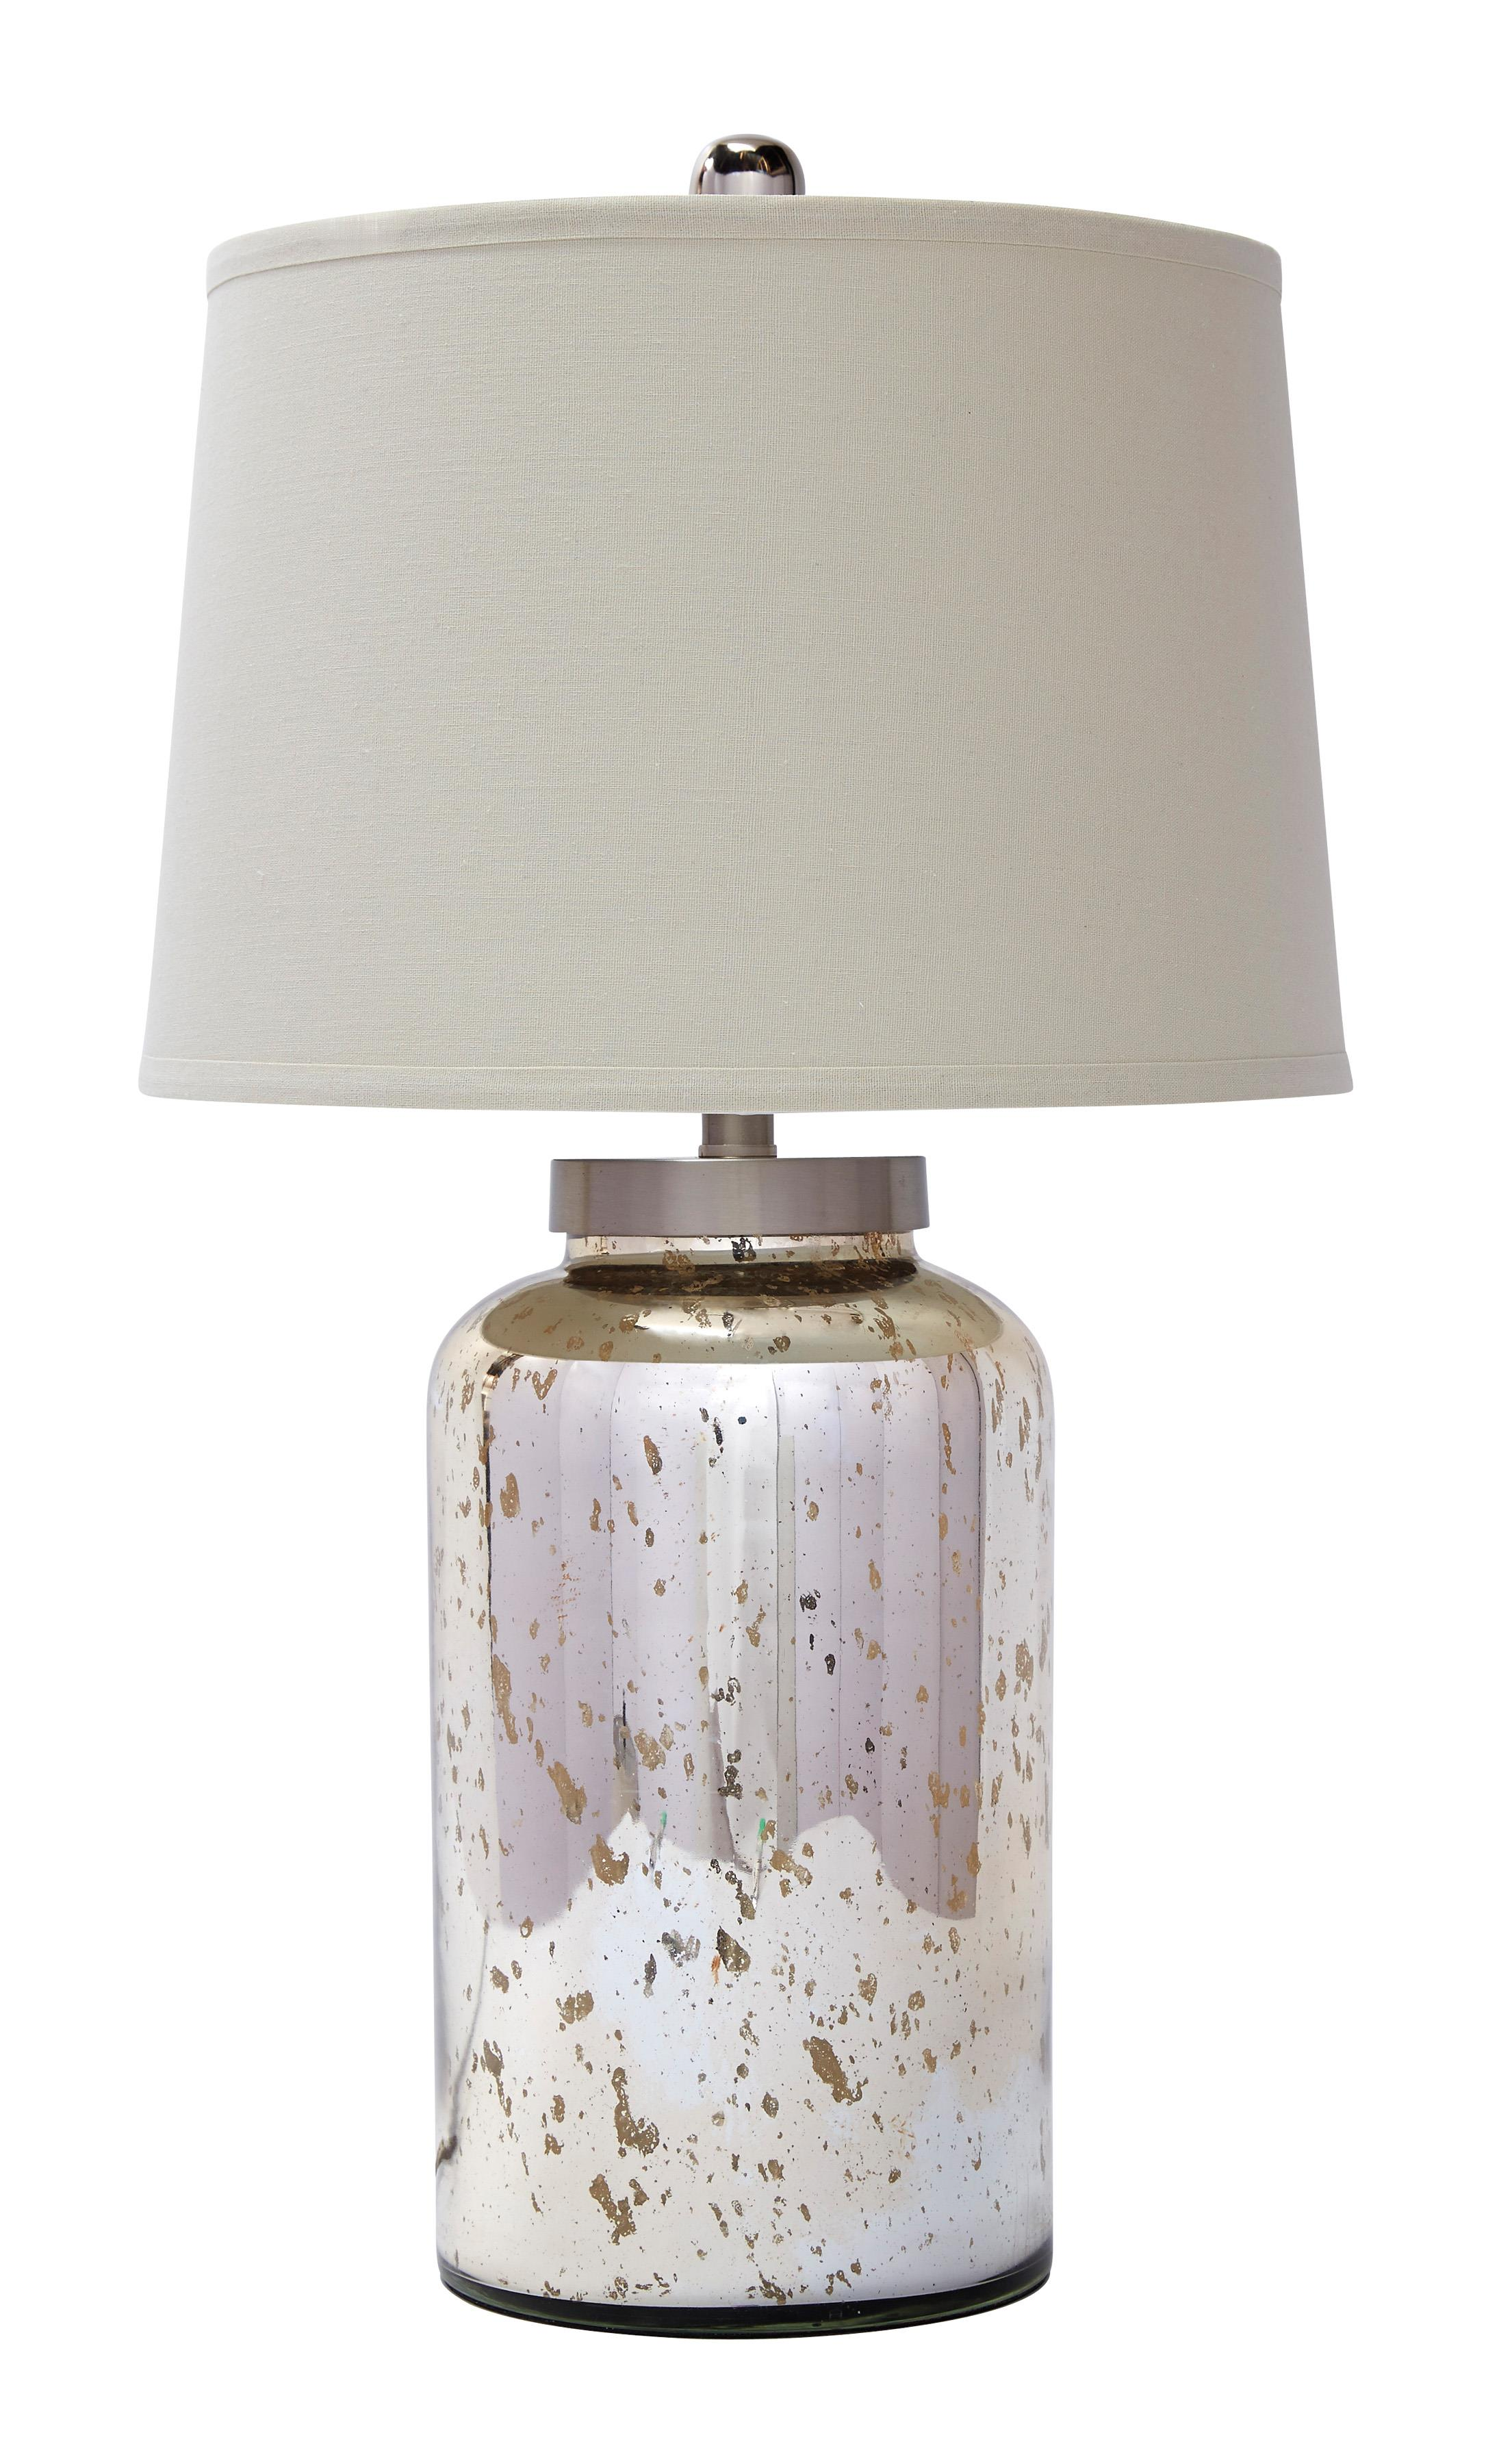 Signature Design by Ashley Lamps - Vintage Style Glass Table Lamp  - Item Number: L430054